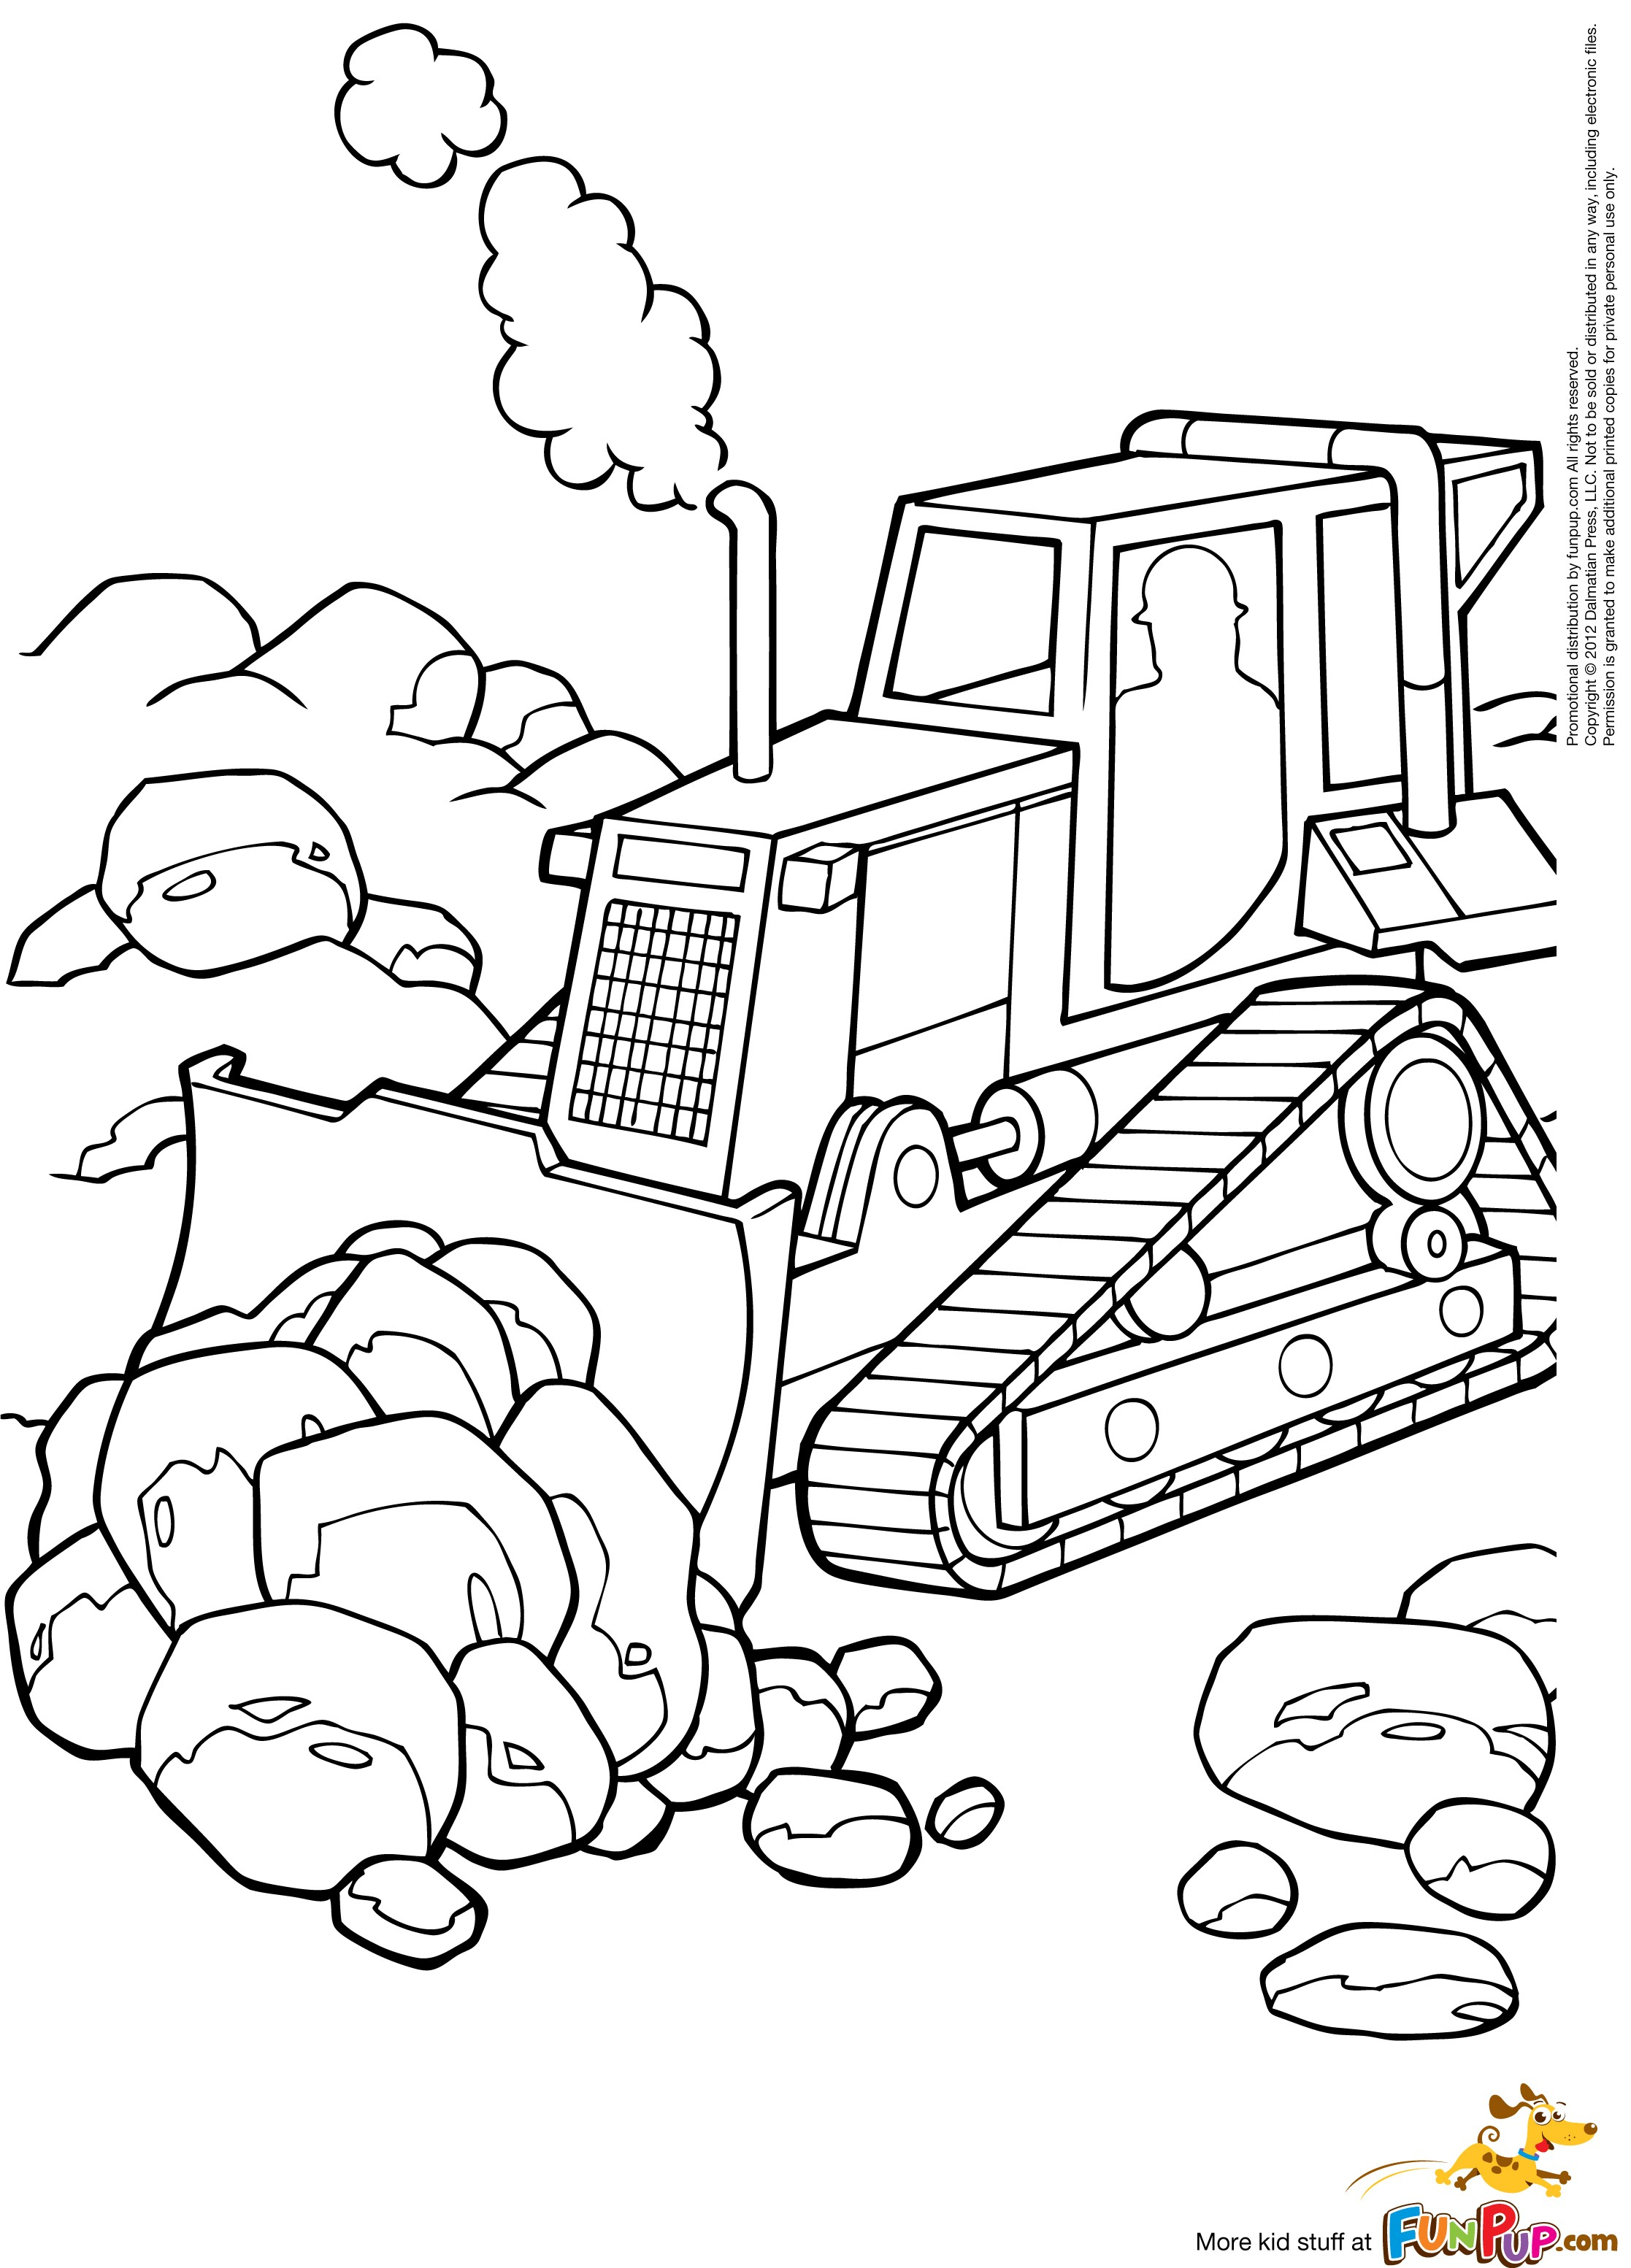 construction pictures to color construction equipment coloring pages coloring pages for color pictures construction to